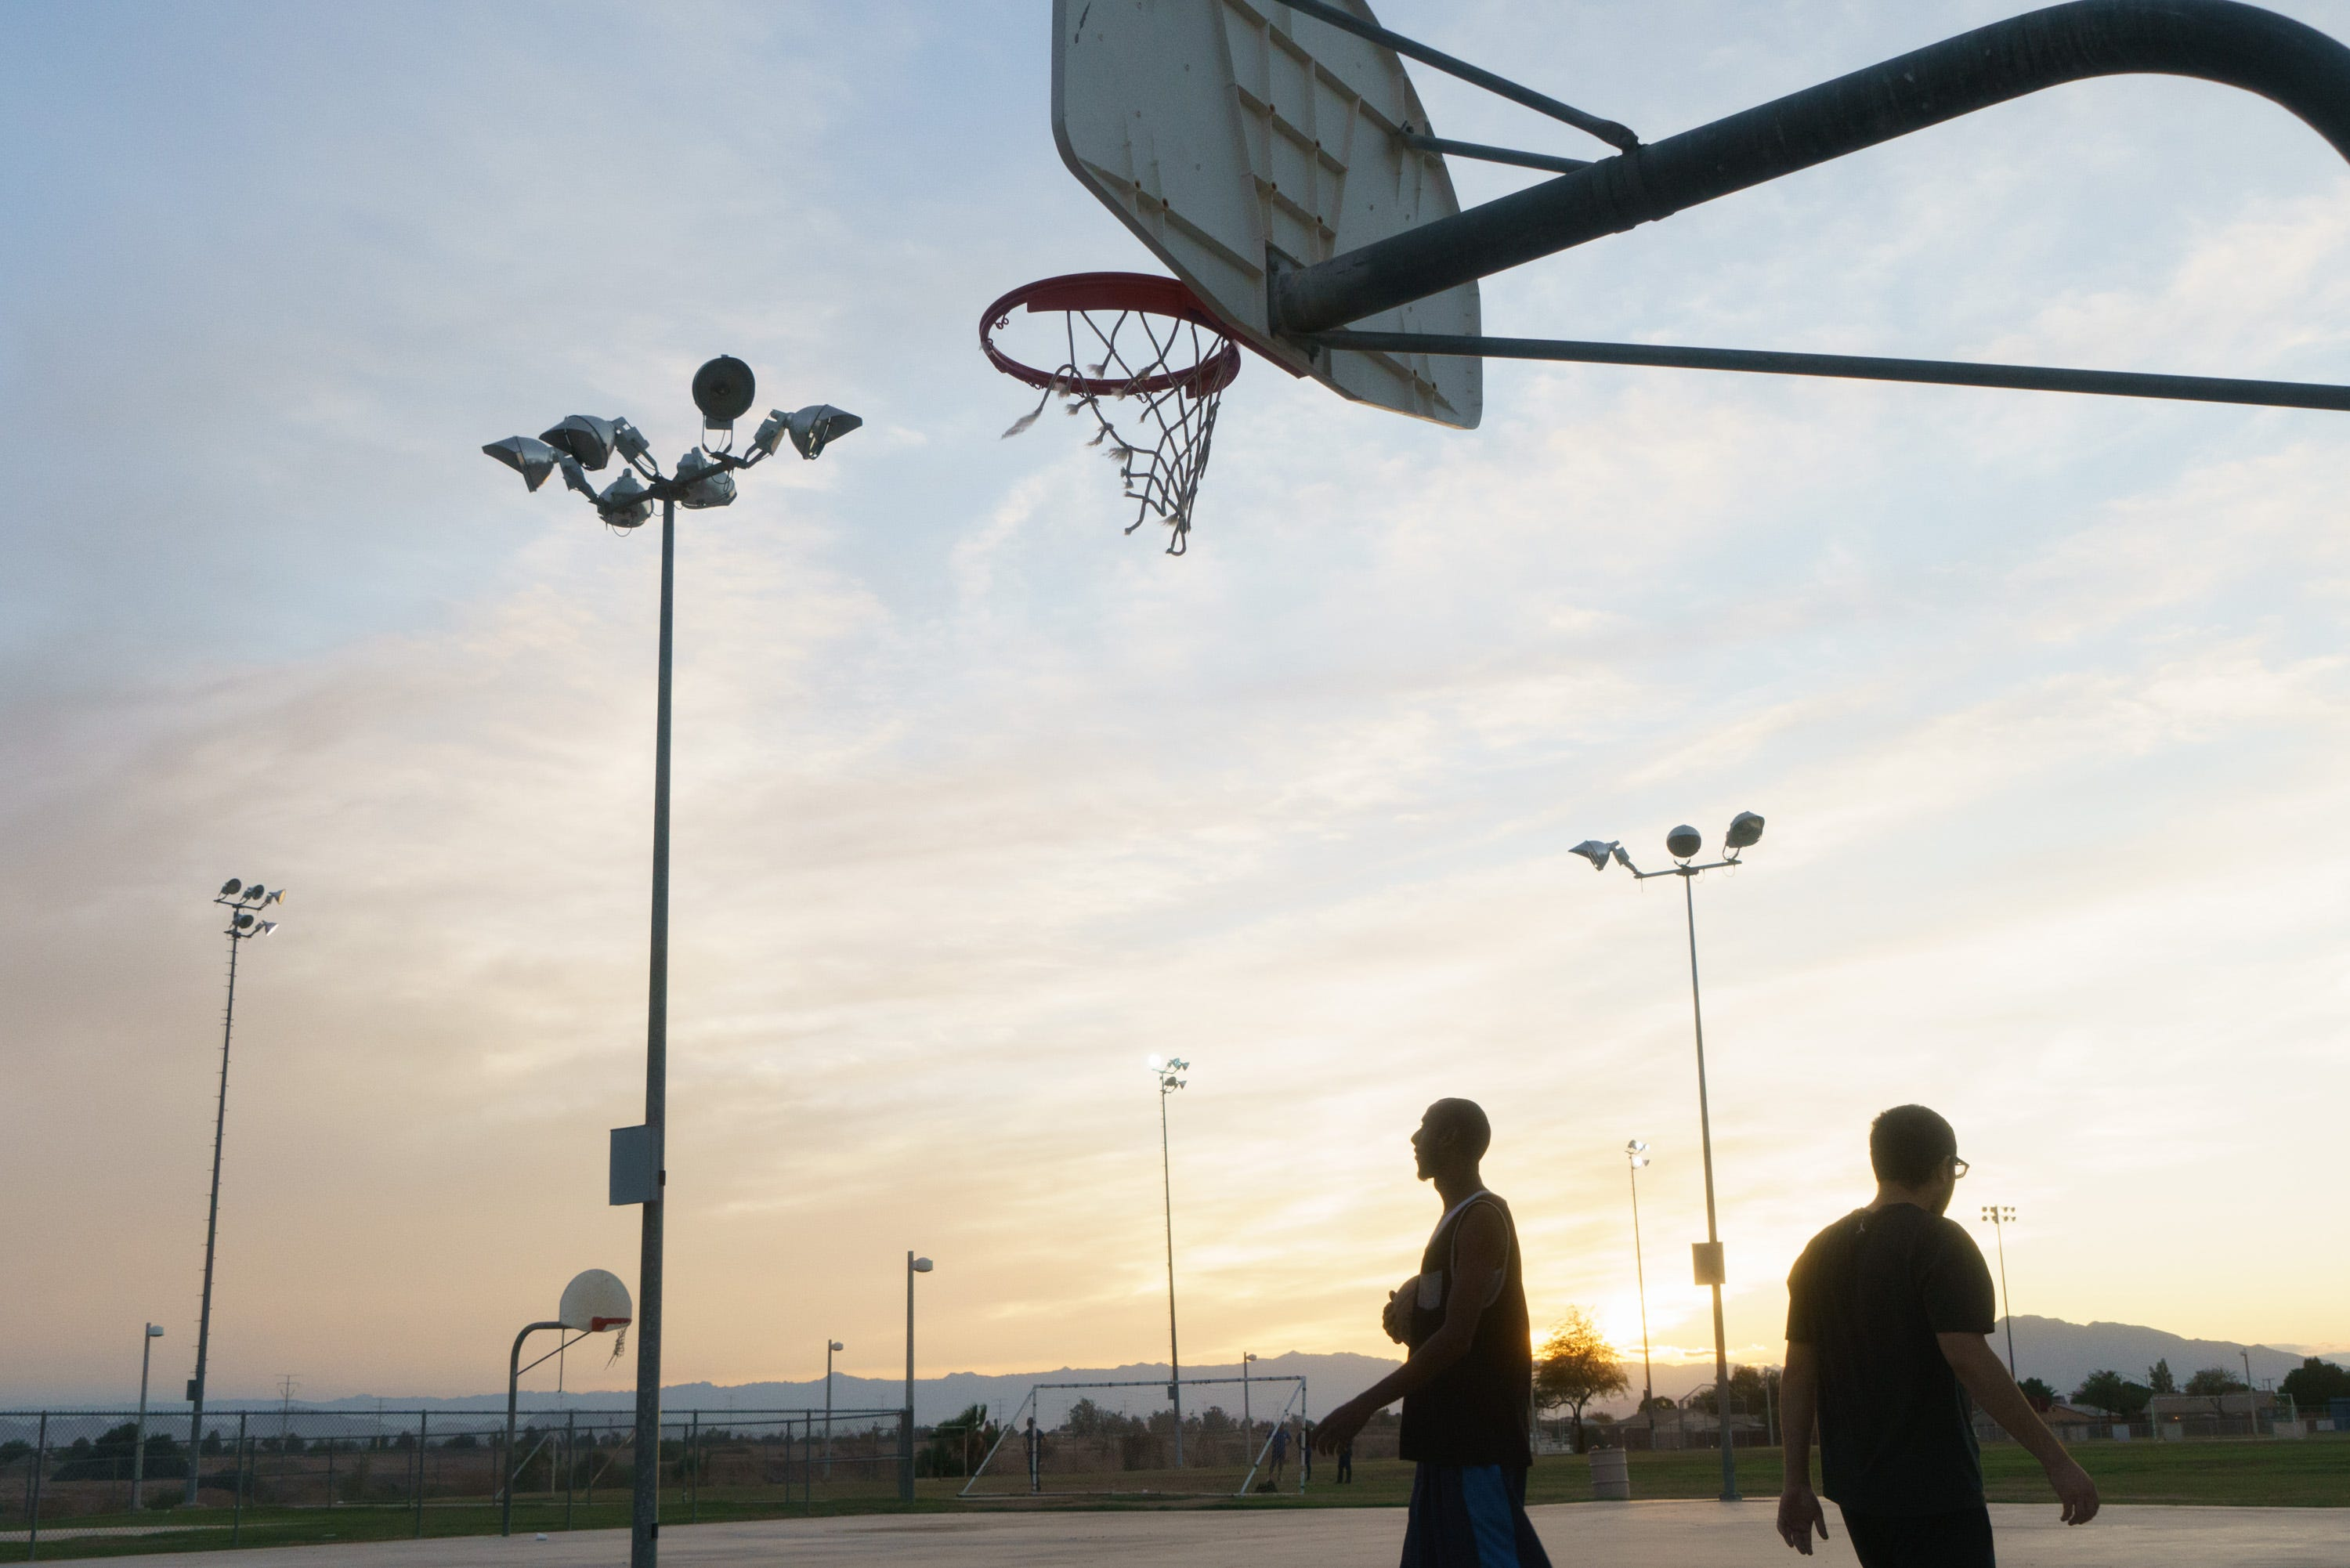 André Walker and Noor Hijazi play basketball at a park next to the New River in Calexico.